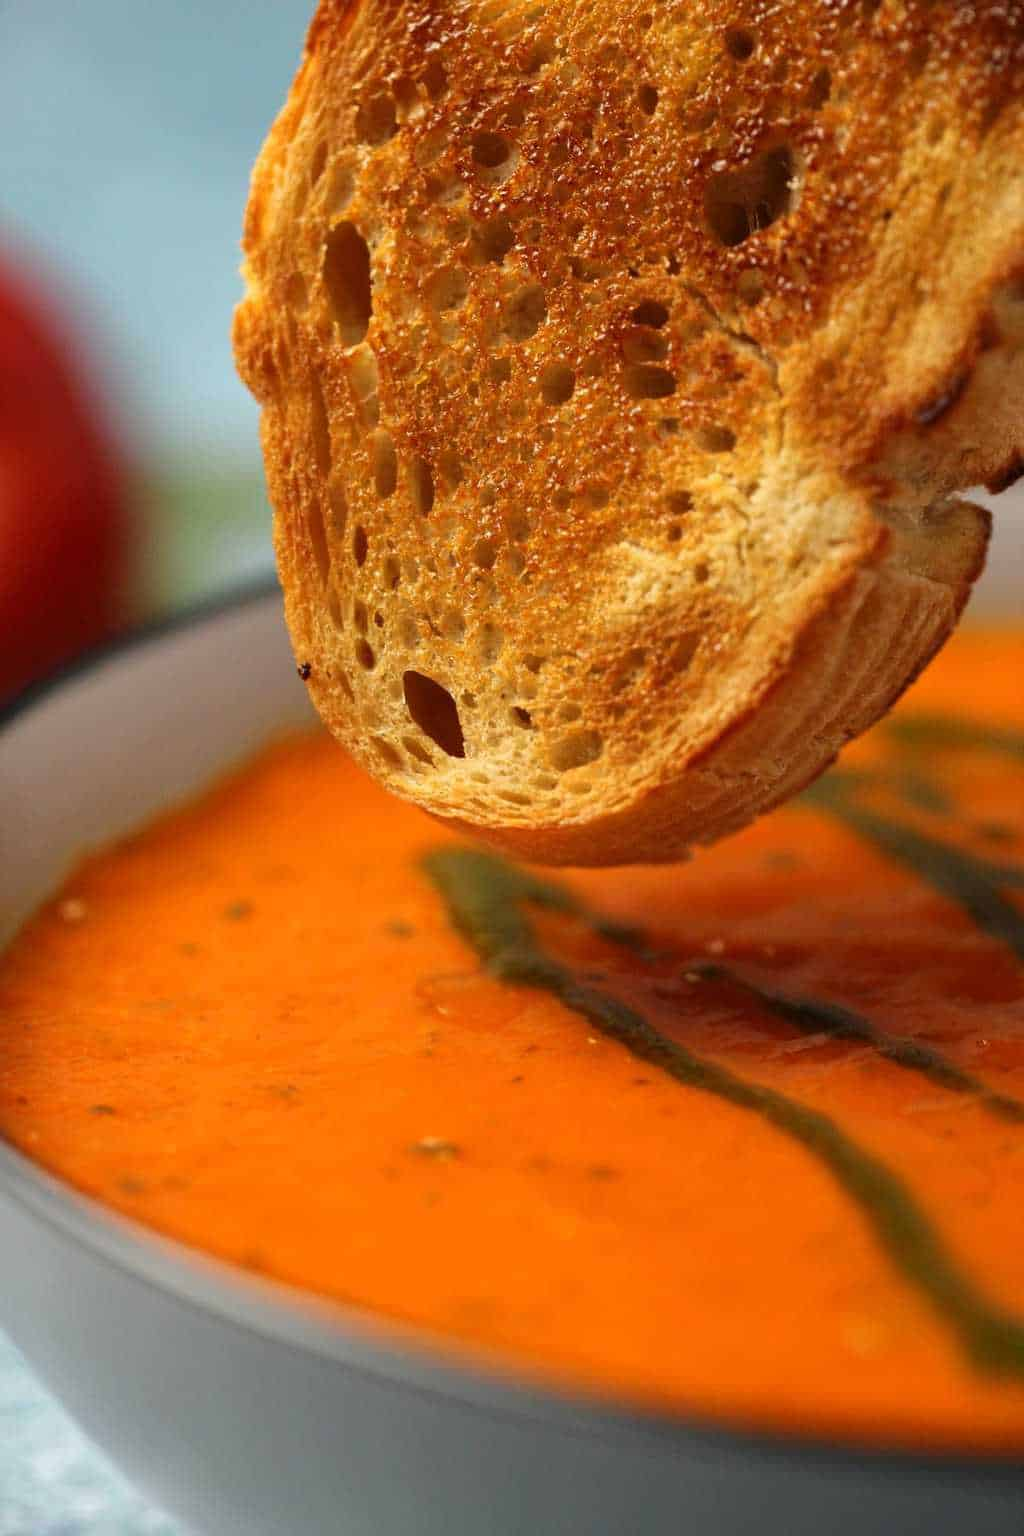 A slice of toasted bread about to dip into a bowl of vegan tomato basil soup.